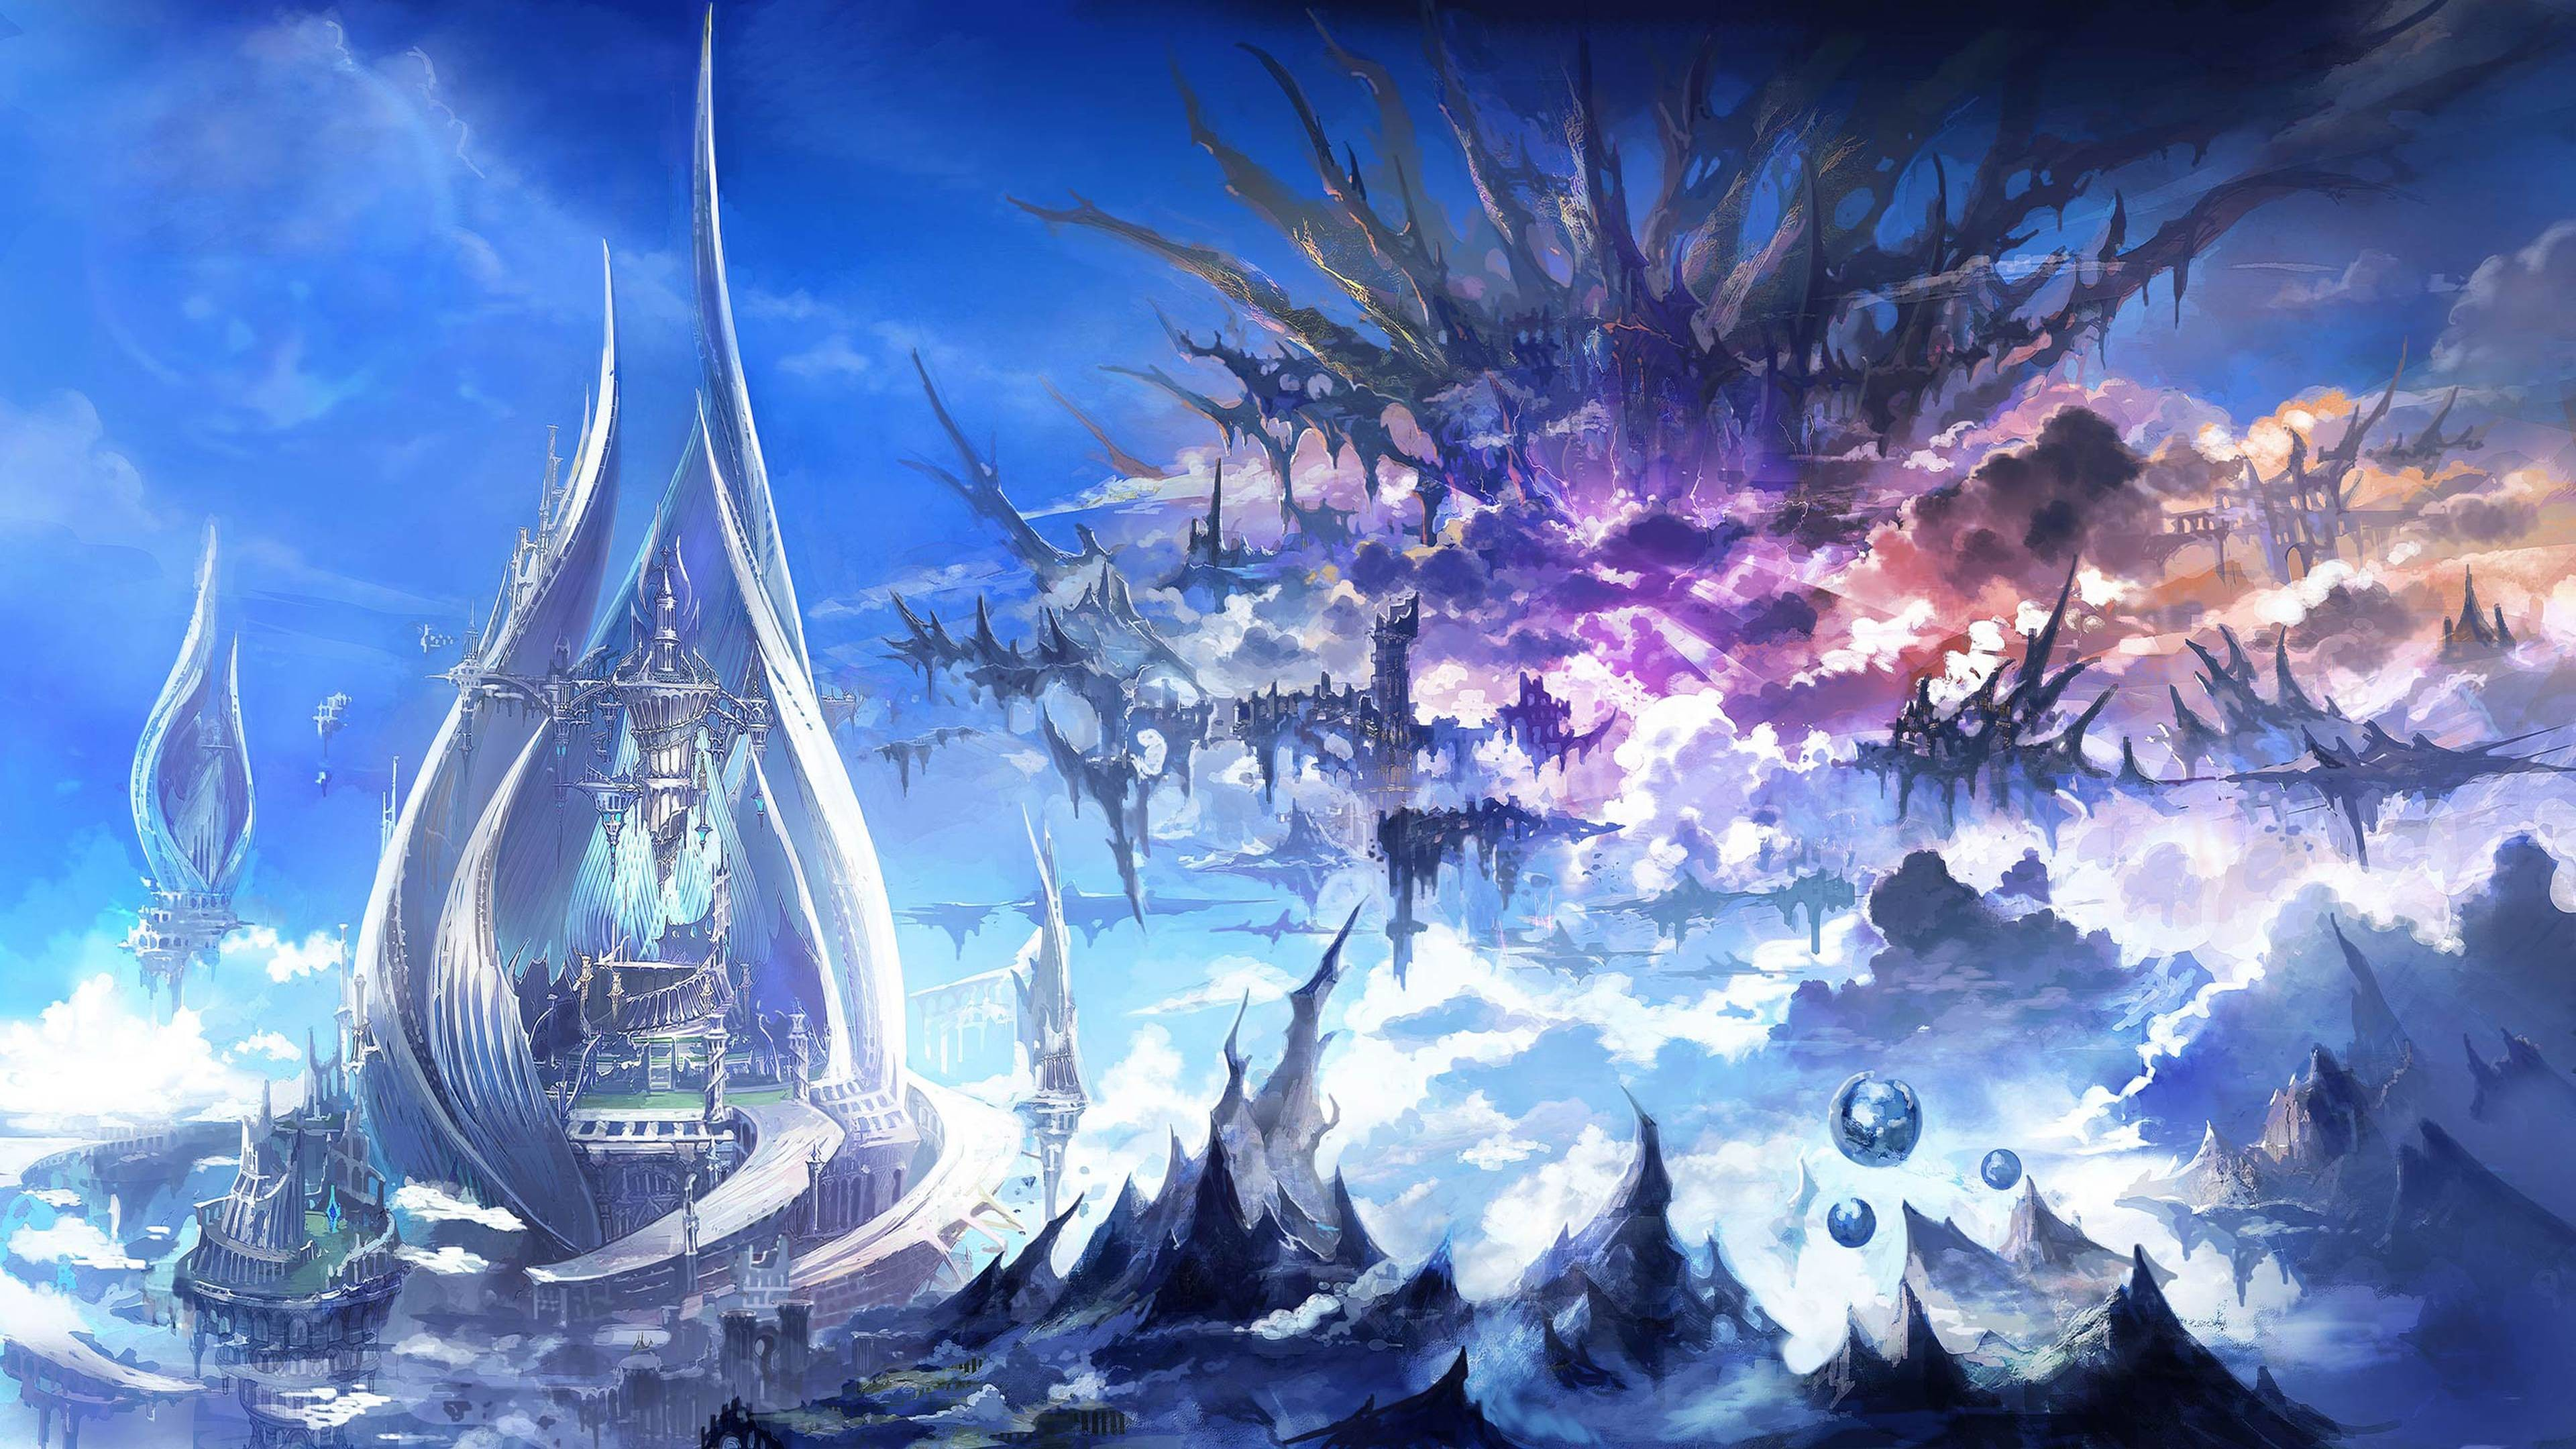 final fantasy x wallpaper (71+ images)